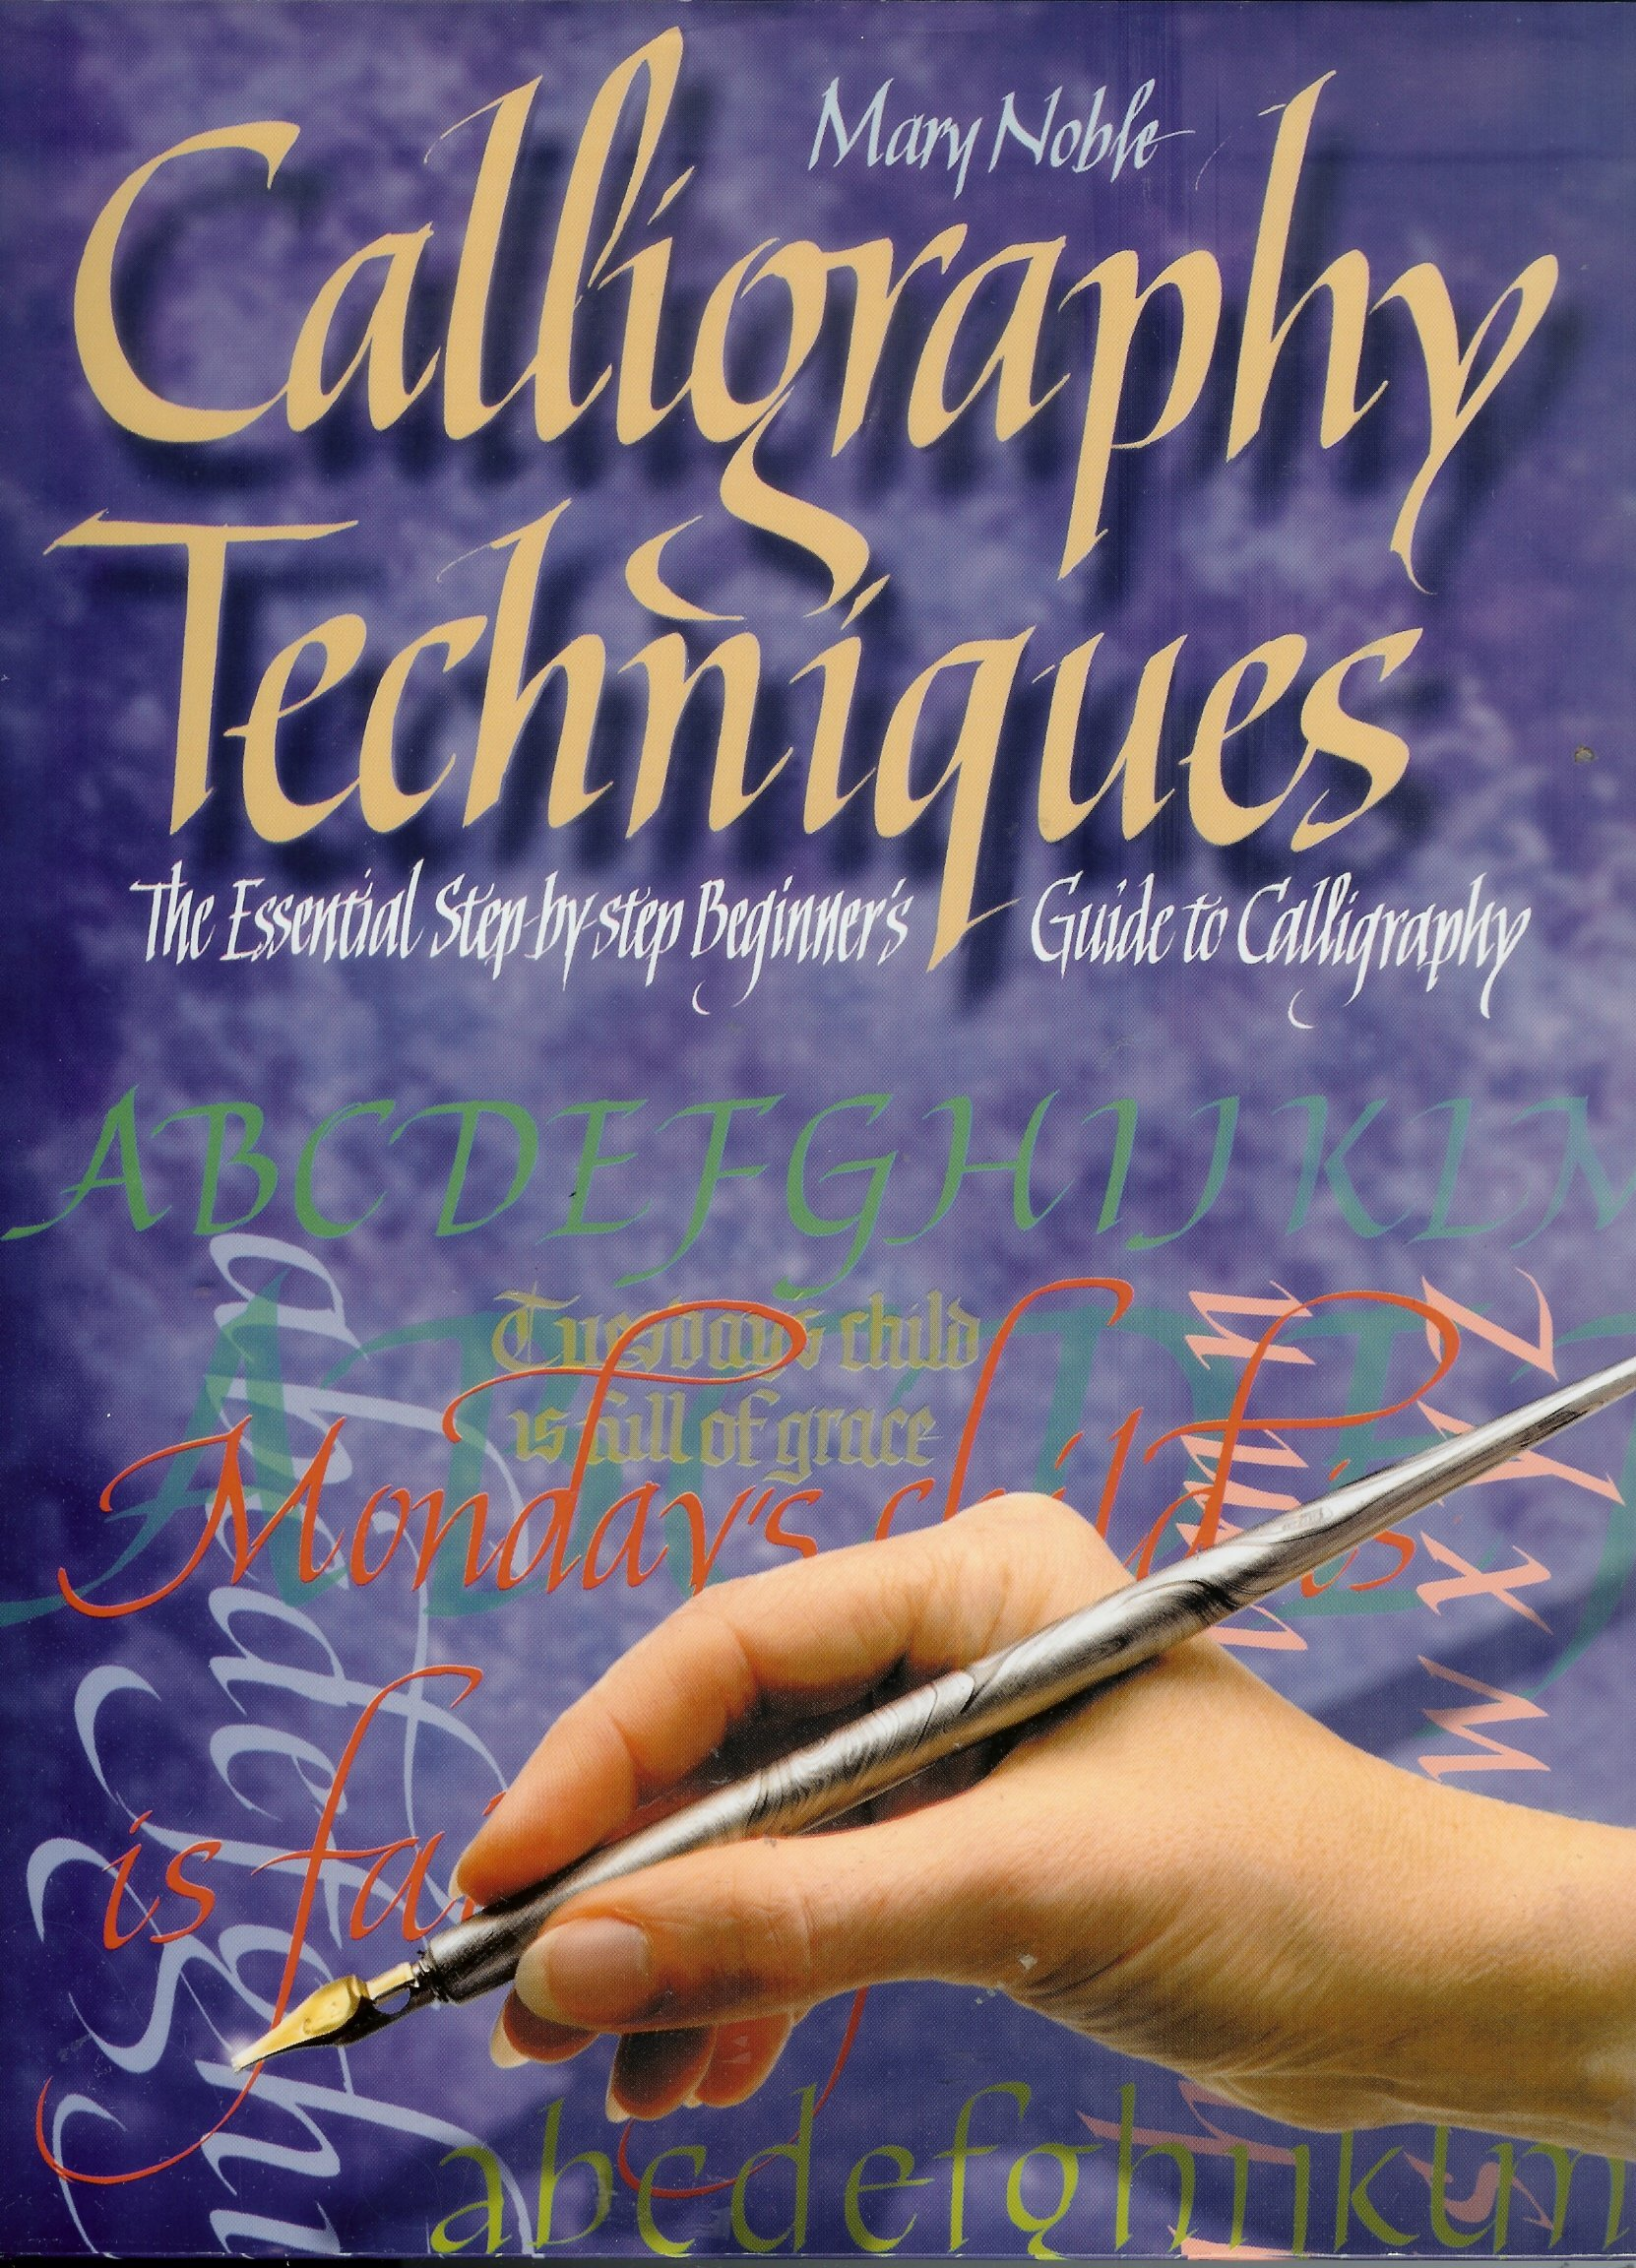 Calligraphy Techniques: The Essential Step-by-step Beginner's Guide to Calligraphy pdf